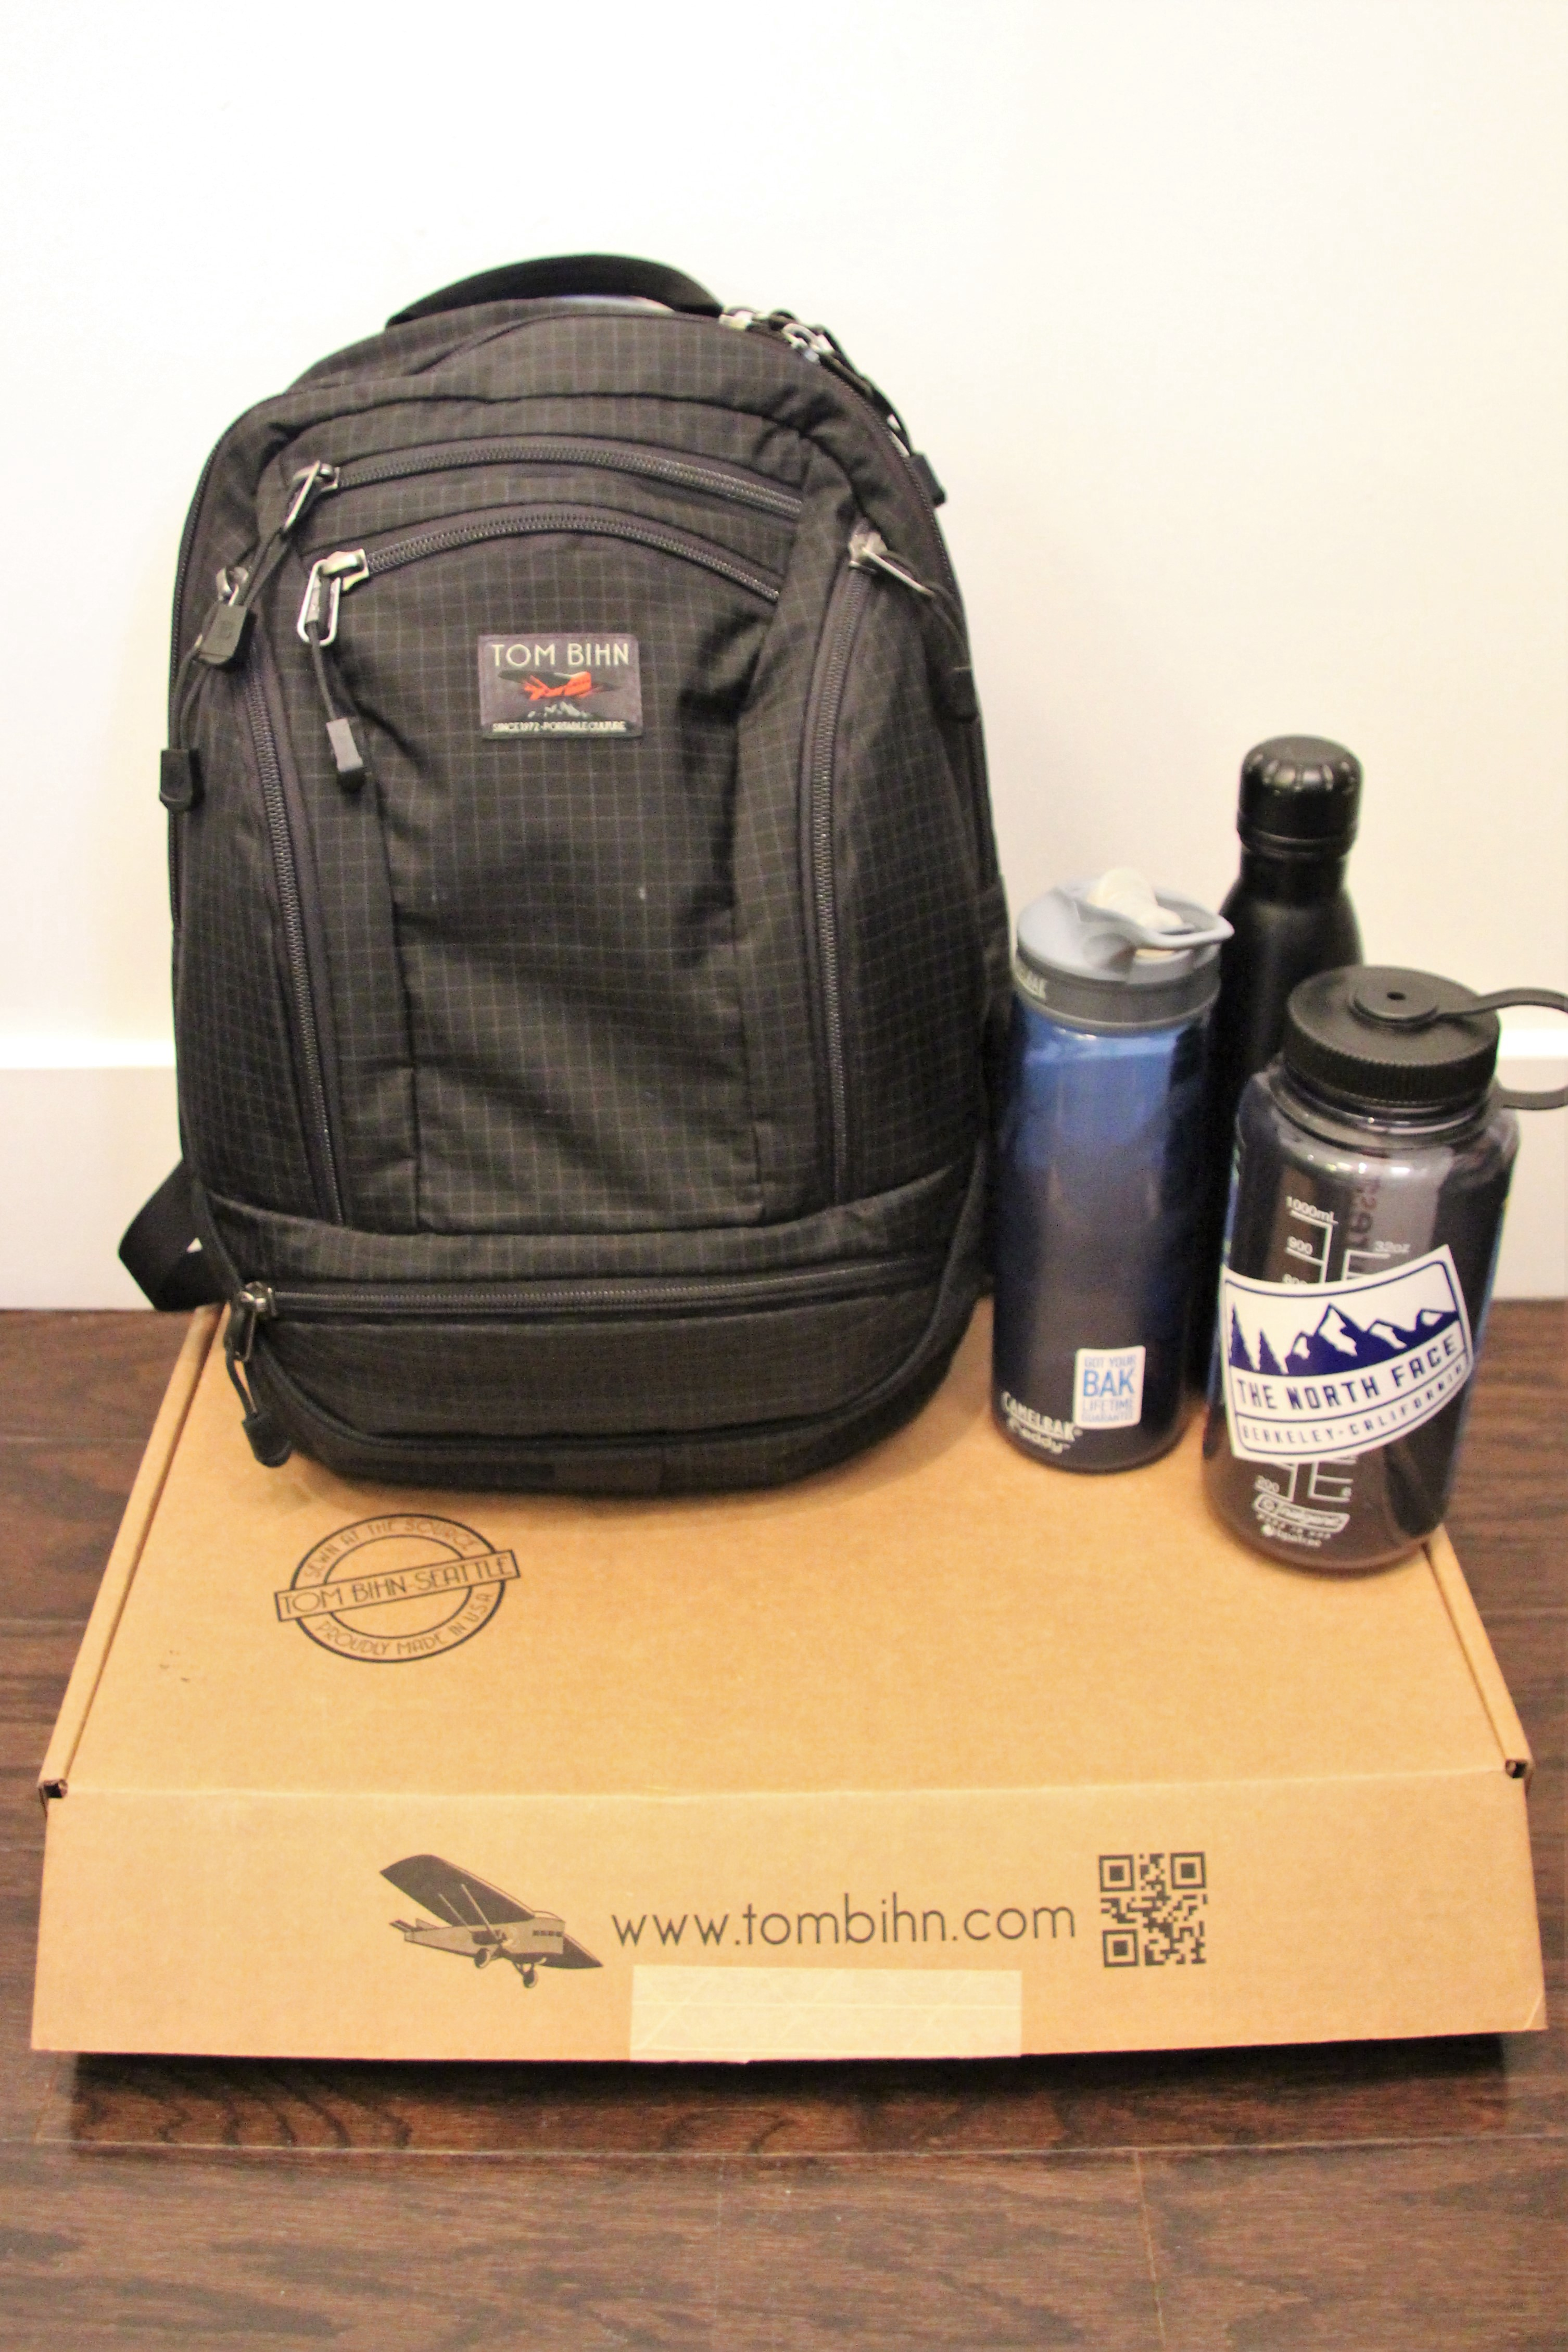 902a2f276050 Tom Bihn Synapse 19 — Comprehensive Review - Pangolins with Packs